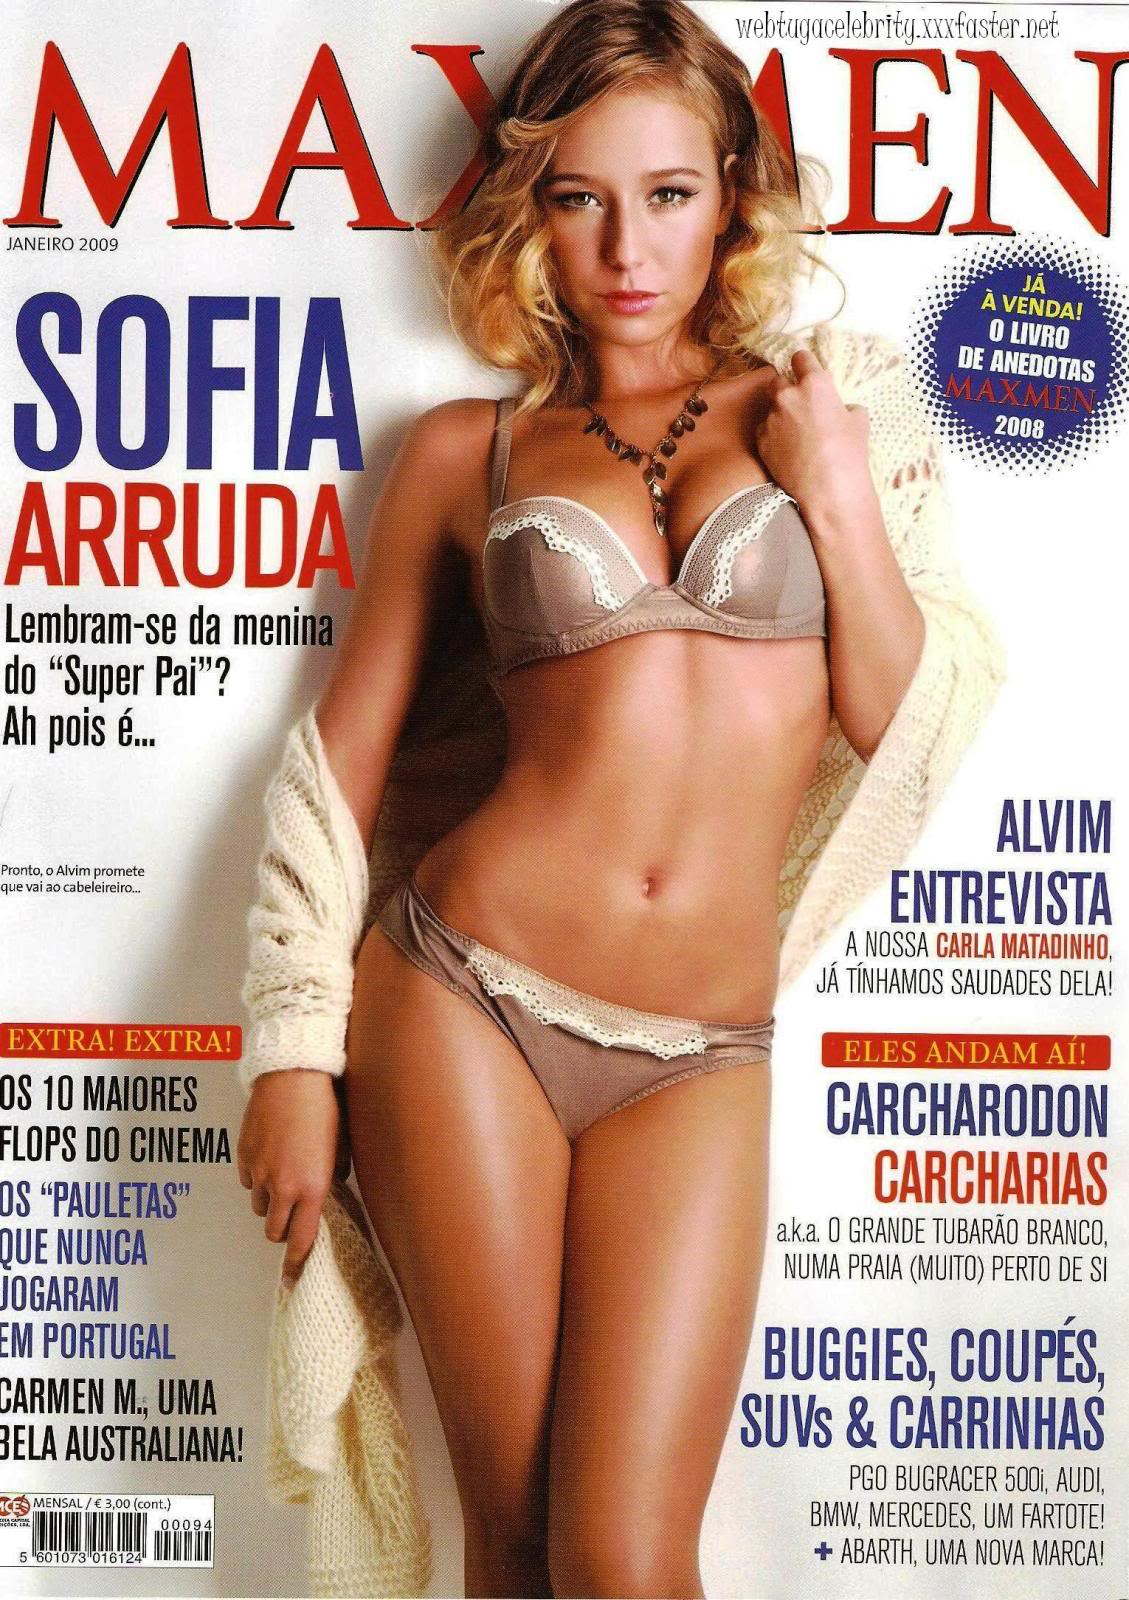 Sofia Arruda - MaxMen Scans - Sexy Actress Pictures | Hot Actress Pictures - ActressSnaps.com